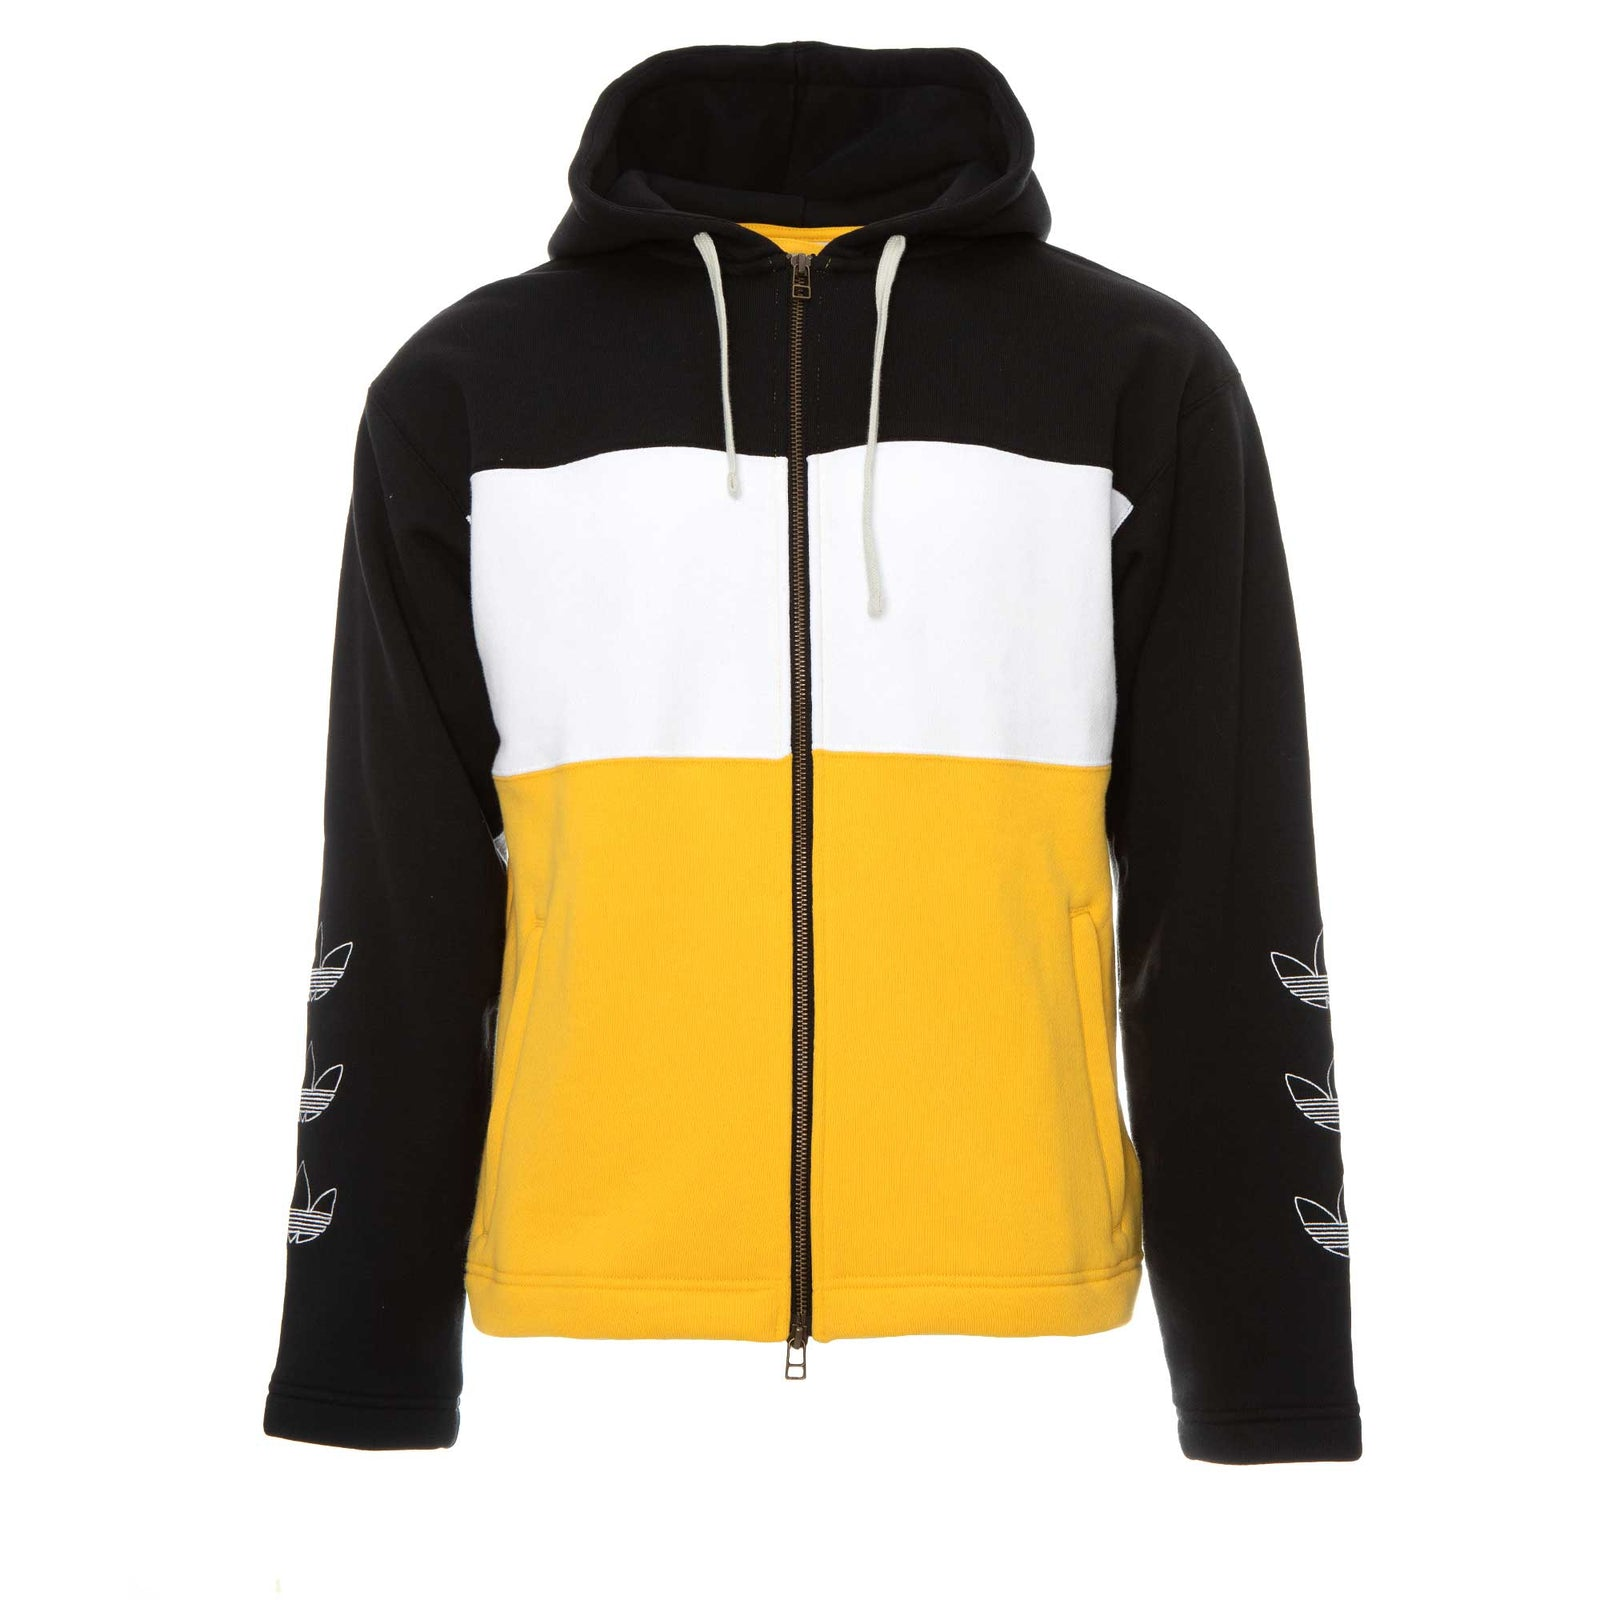 Adidas Originals Full Zip Hoodie